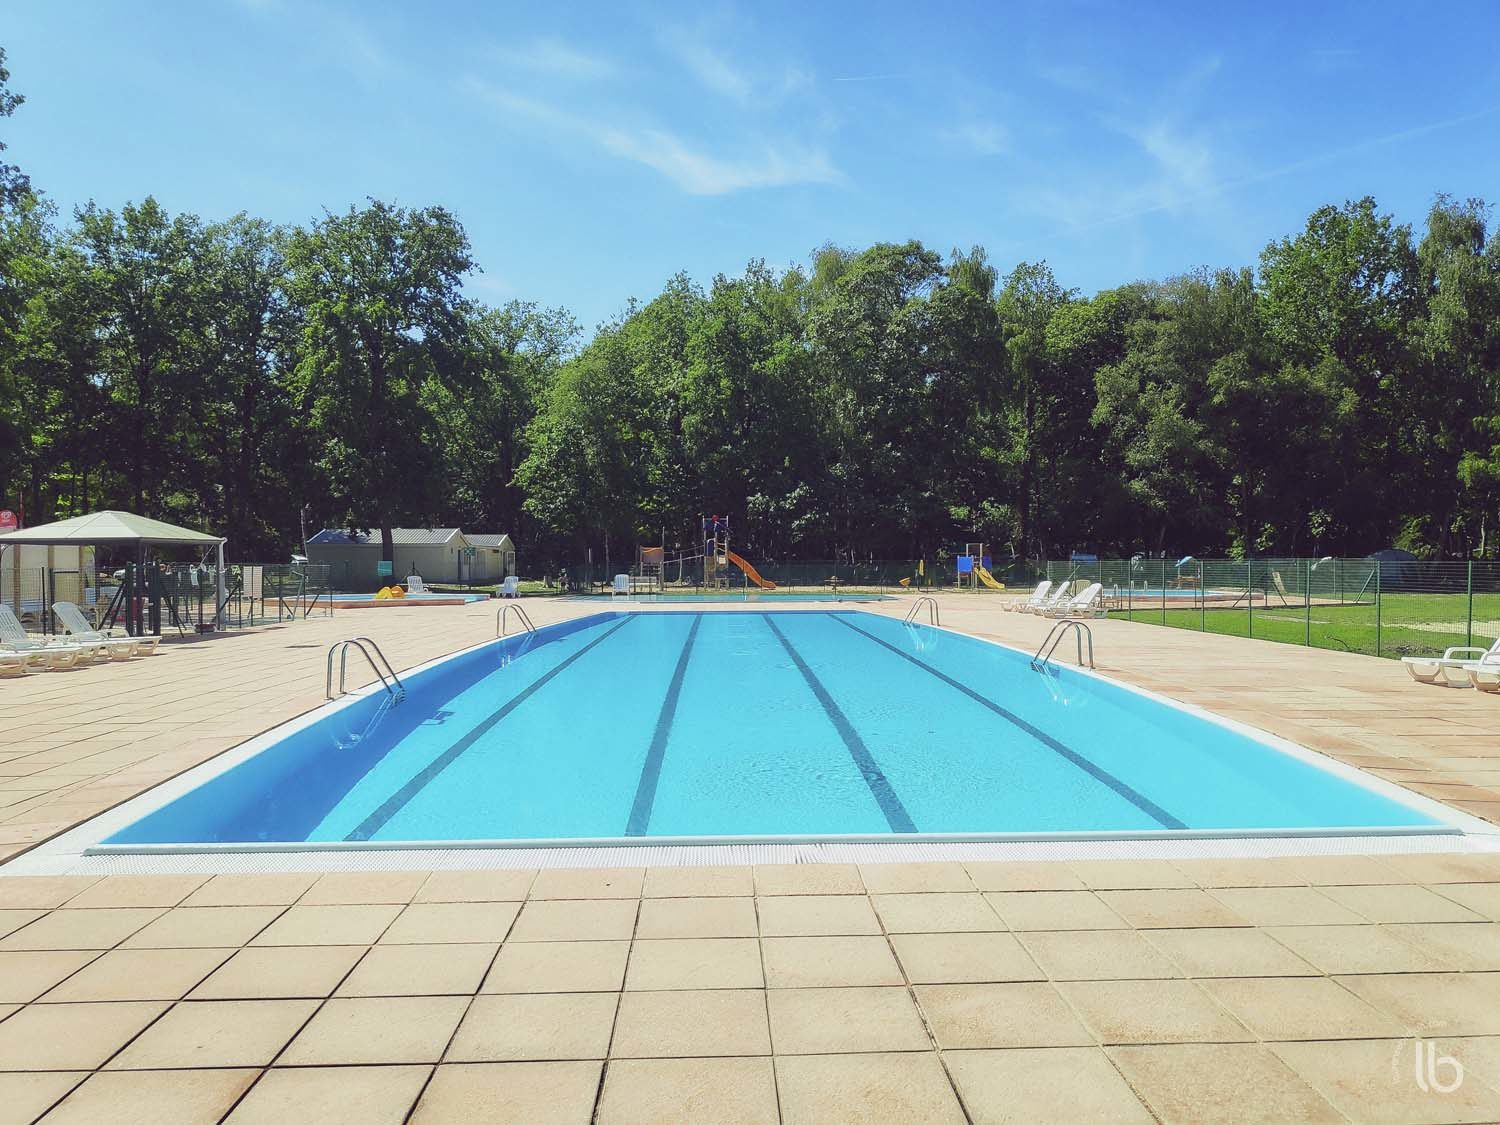 Swimming pool of the camping La Musardière in Milly-la-Forêt